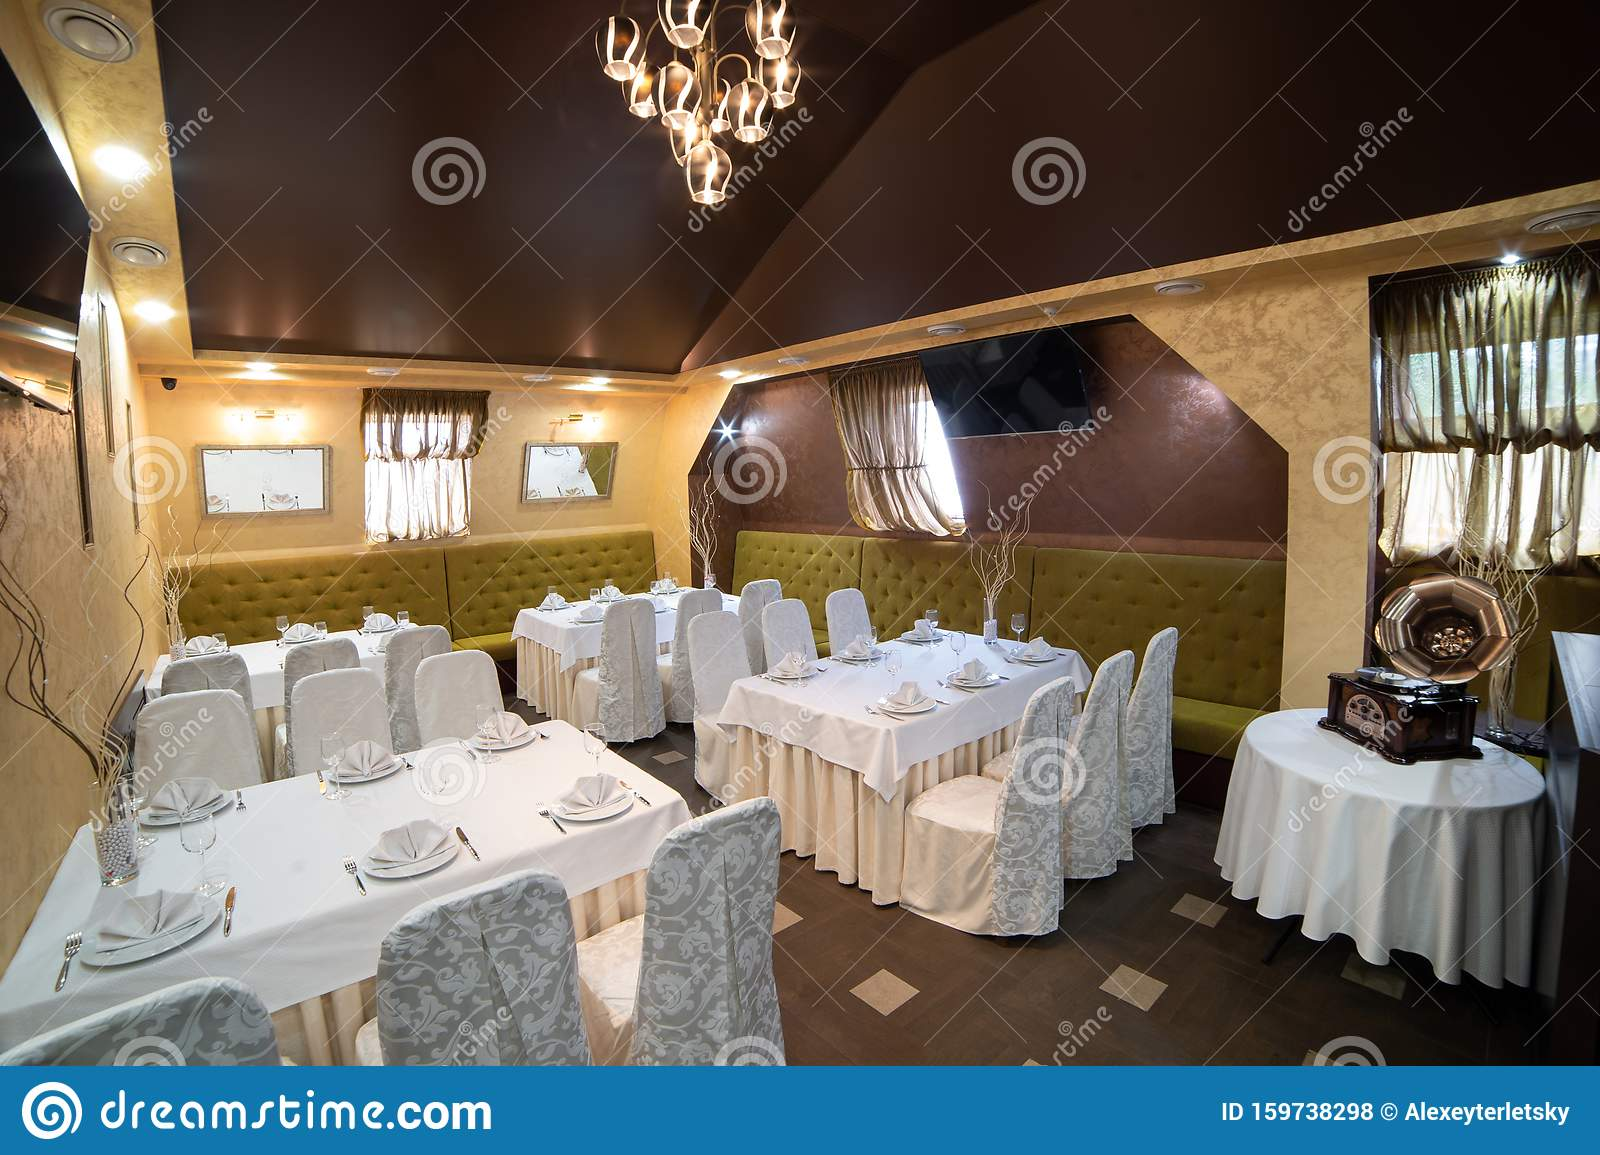 Cozy Restaurant Interior Cafe Lounge Table Party Stock Photo Image Of Food Table 159738298